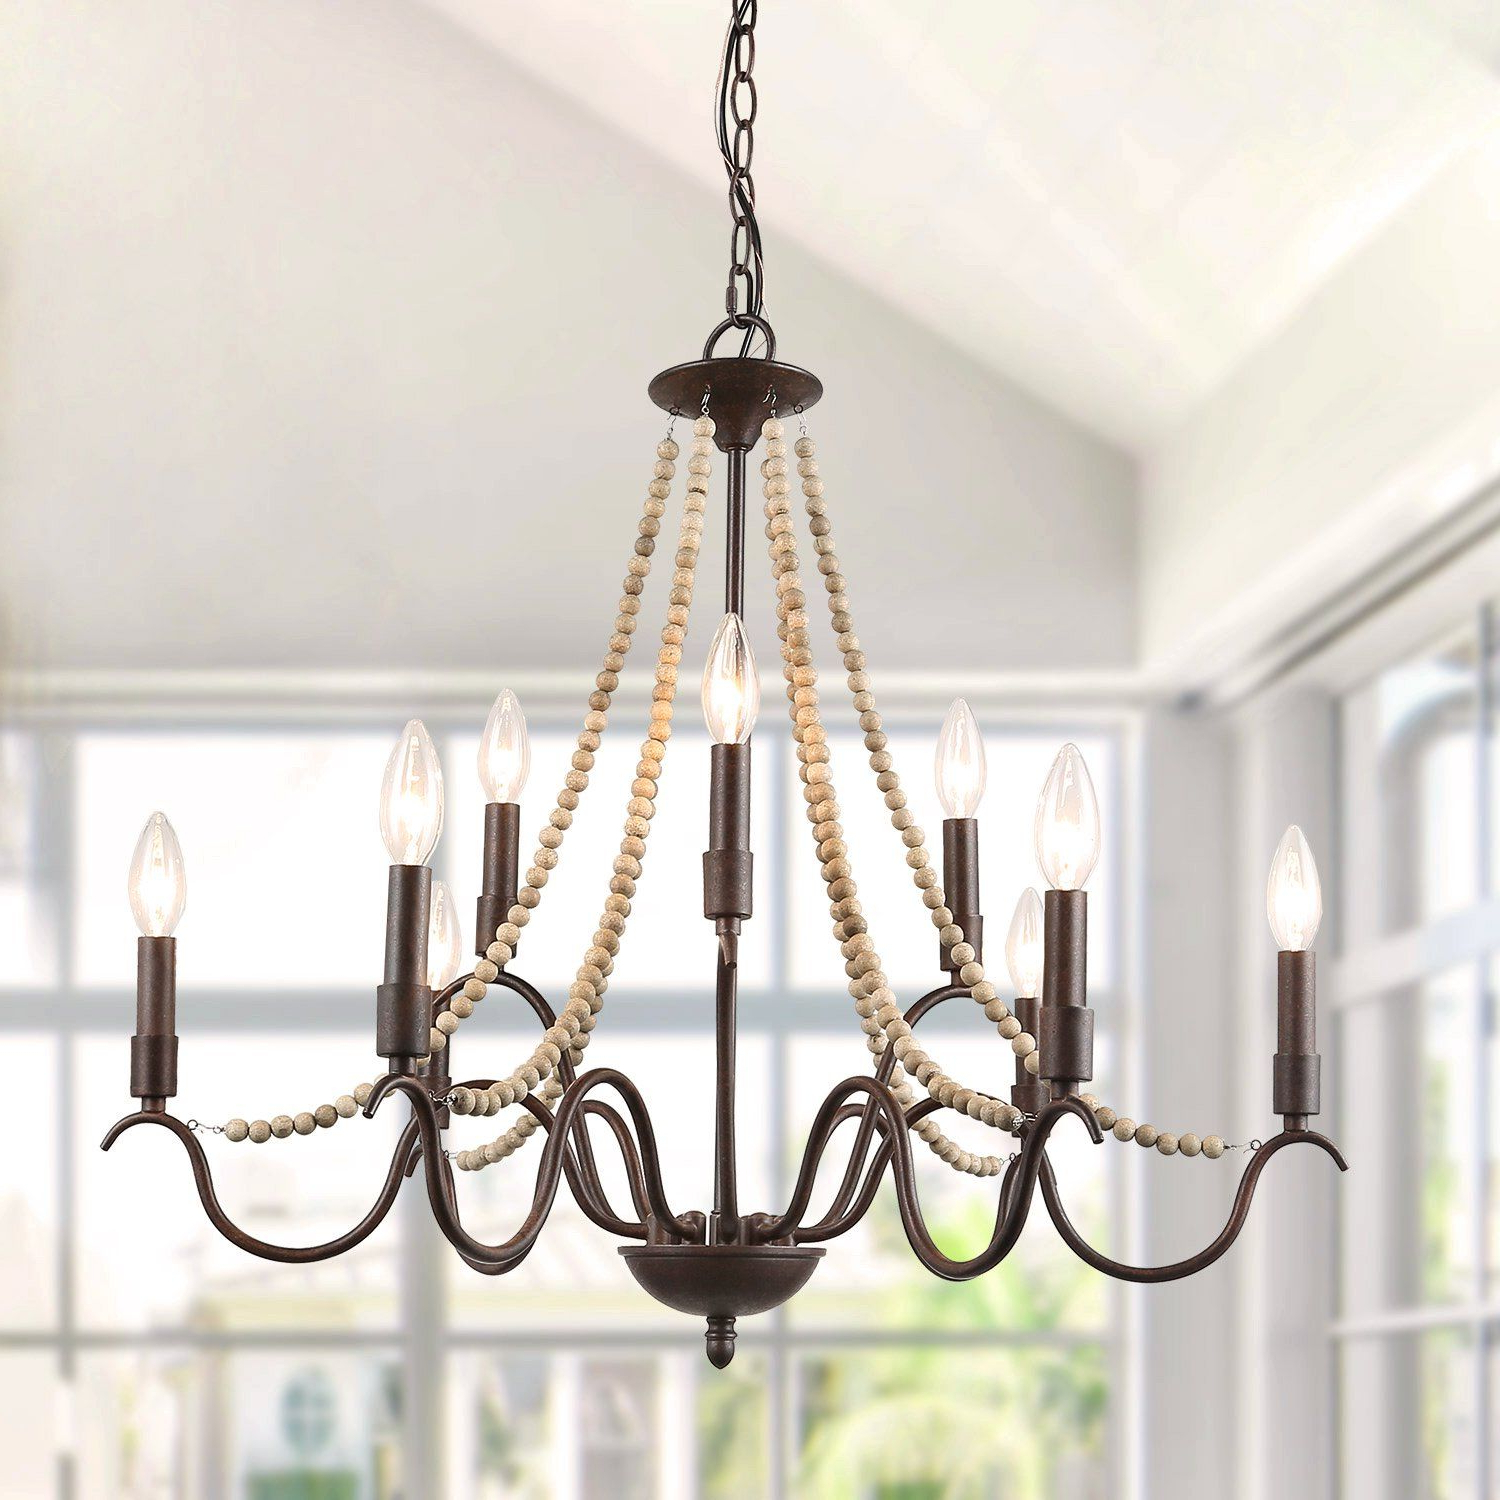 Current Duron 5 Light Empire Chandeliers Throughout Lnc Chandeliers French Country Wood Bead Candle Style (View 15 of 25)